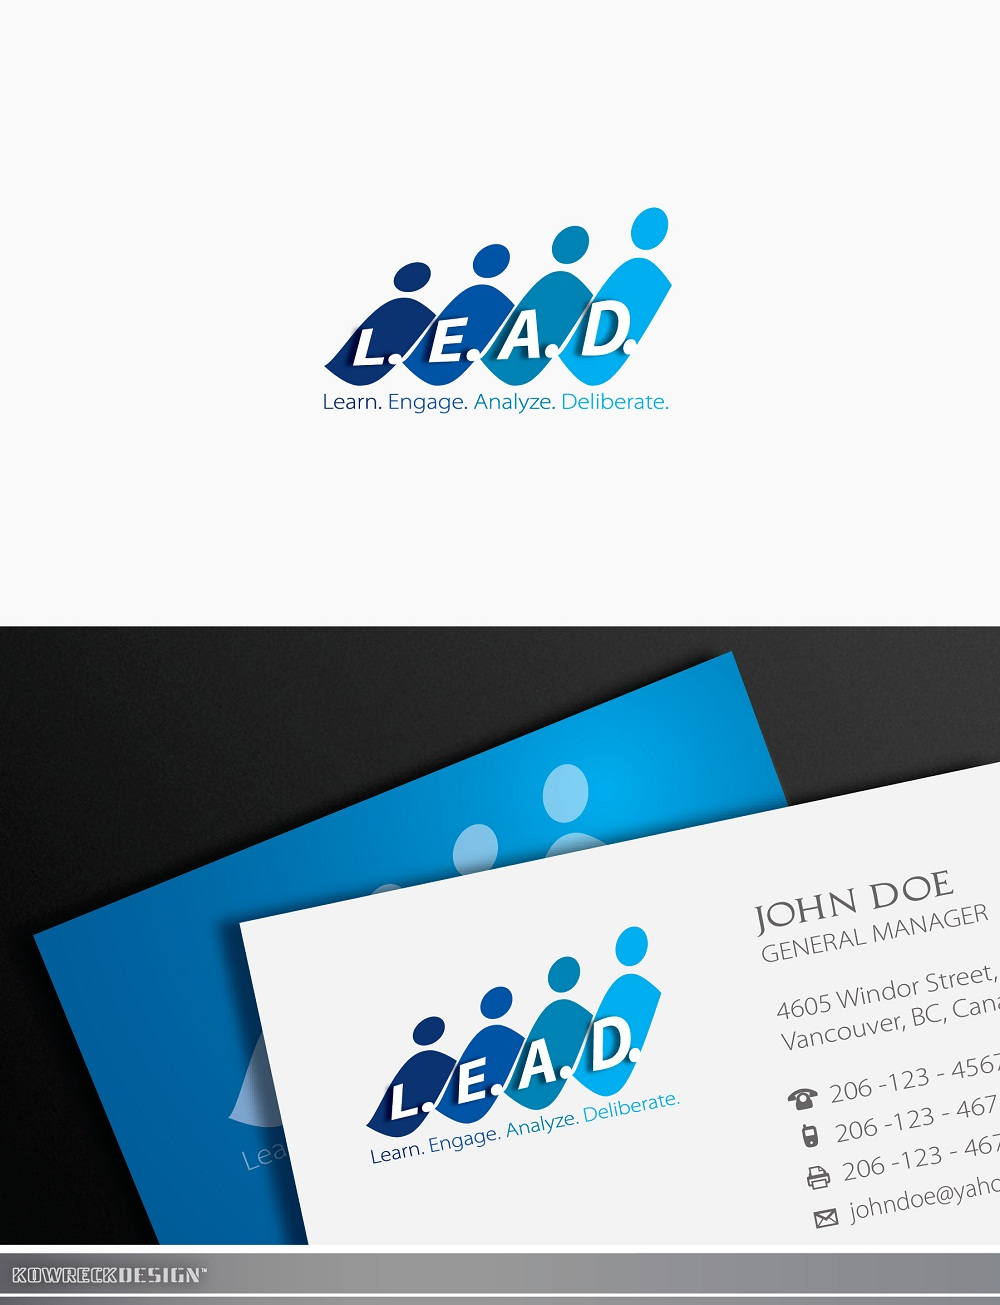 Logo Design by kowreck - Entry No. 89 in the Logo Design Contest L.E.A.D. (learn, engage, analyze, deliberate) Logo Design.